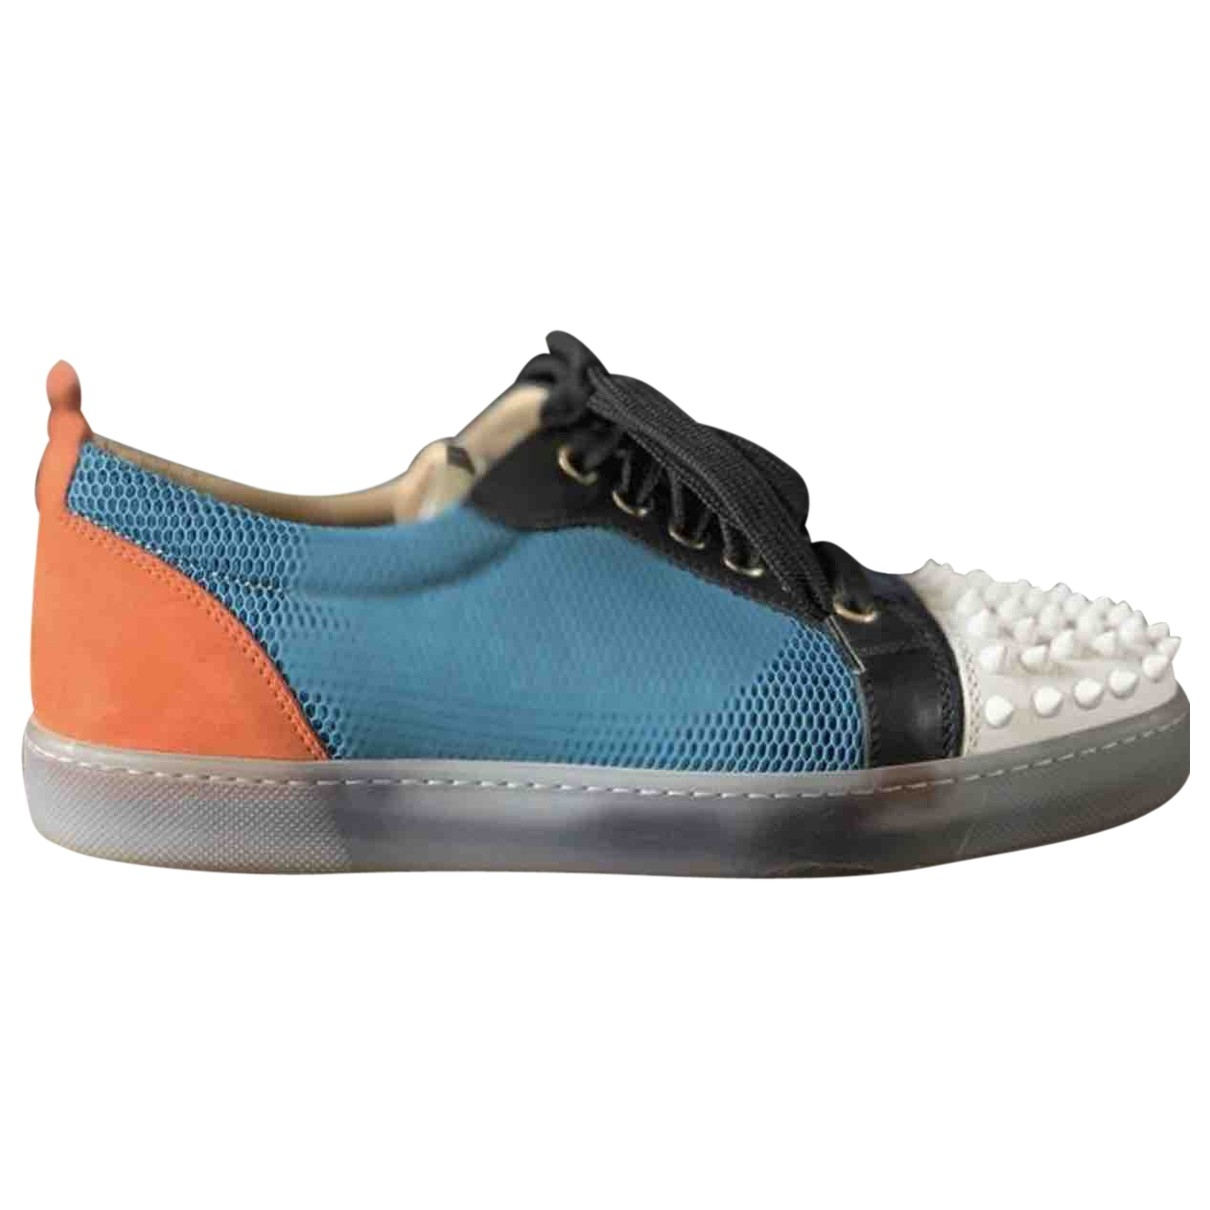 Christian Louboutin Gondolita Blue Velvet Trainers for Women 35.5 EU